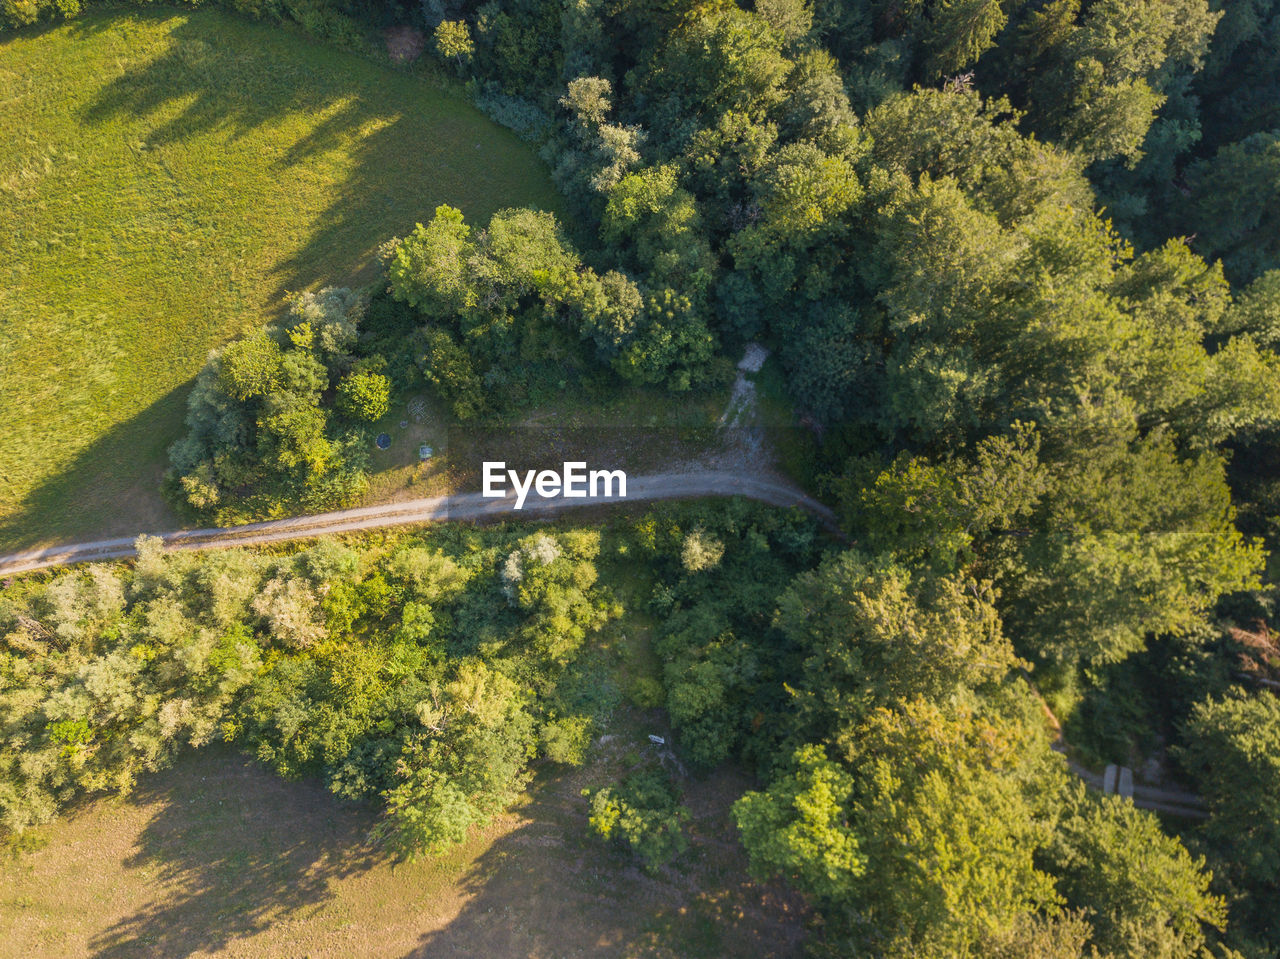 tree, plant, transportation, day, nature, no people, forest, air vehicle, green color, growth, motion, scenics - nature, sunlight, beauty in nature, outdoors, land, mode of transportation, aerial view, environment, landscape